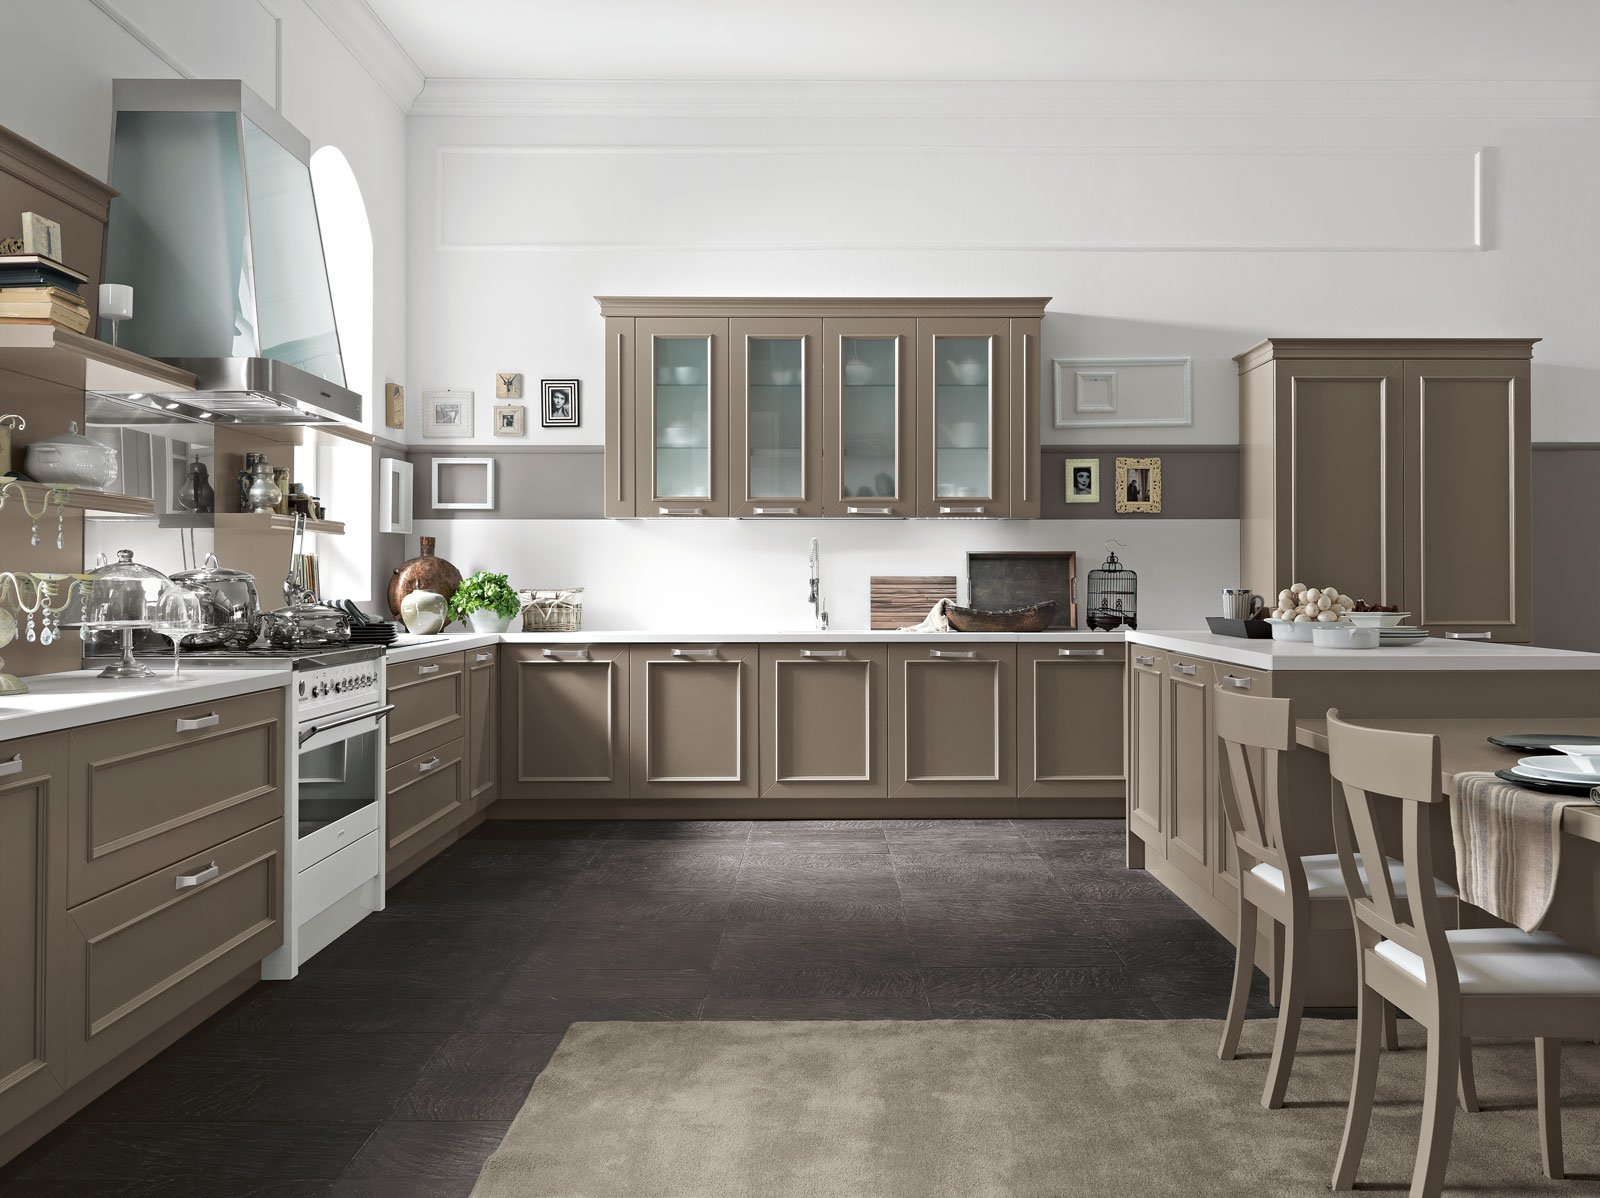 Cucine Eleganti. Best Cucine Eleganti With Cucine Eleganti. Great ...